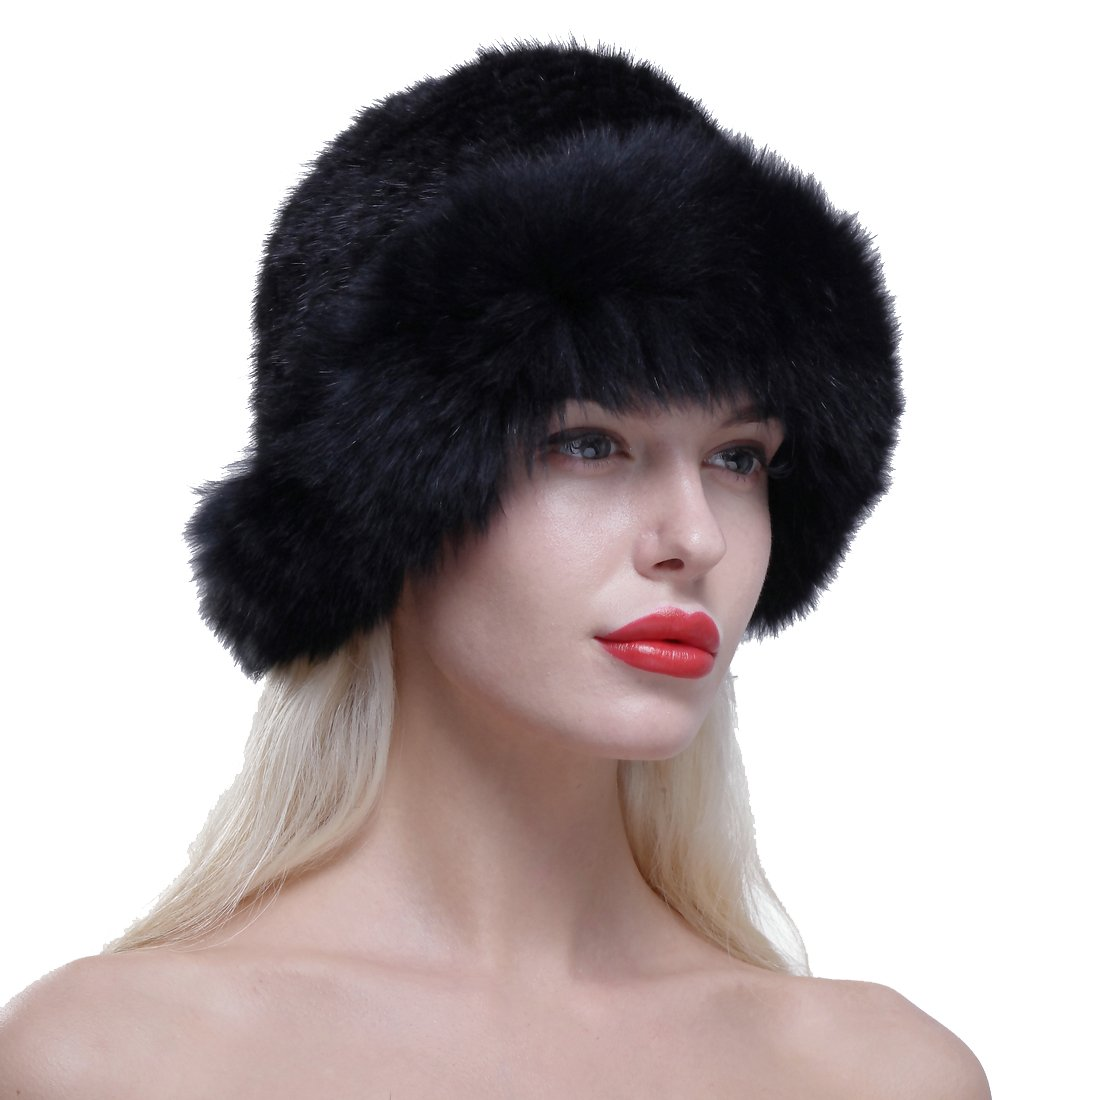 URSFUR Genuine Fox Fur Roller Hat with Knit Mink Top Black